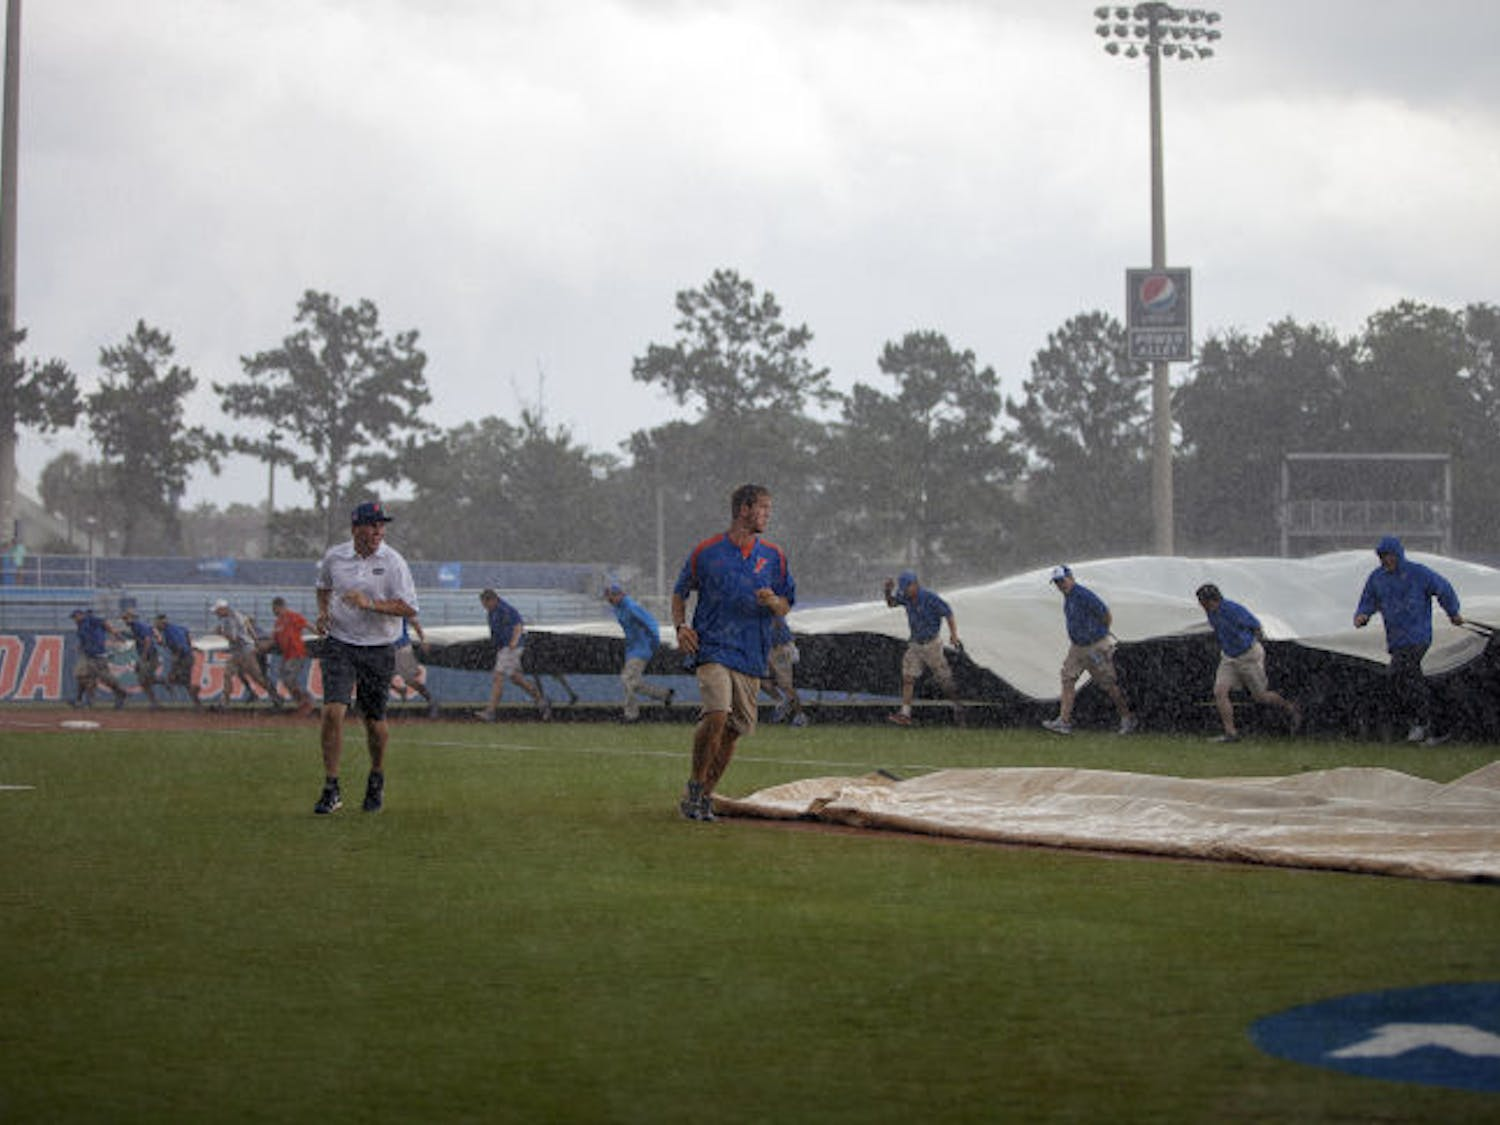 Members of Florida's grounds crew place a tarp over the infield during the rain delay in UF's 5-2 loss to UNC on Saturday at McKethan Stadium. The Tar Heels scored all five of their runs in the inning following the rain delay, which lasted more than three hours.